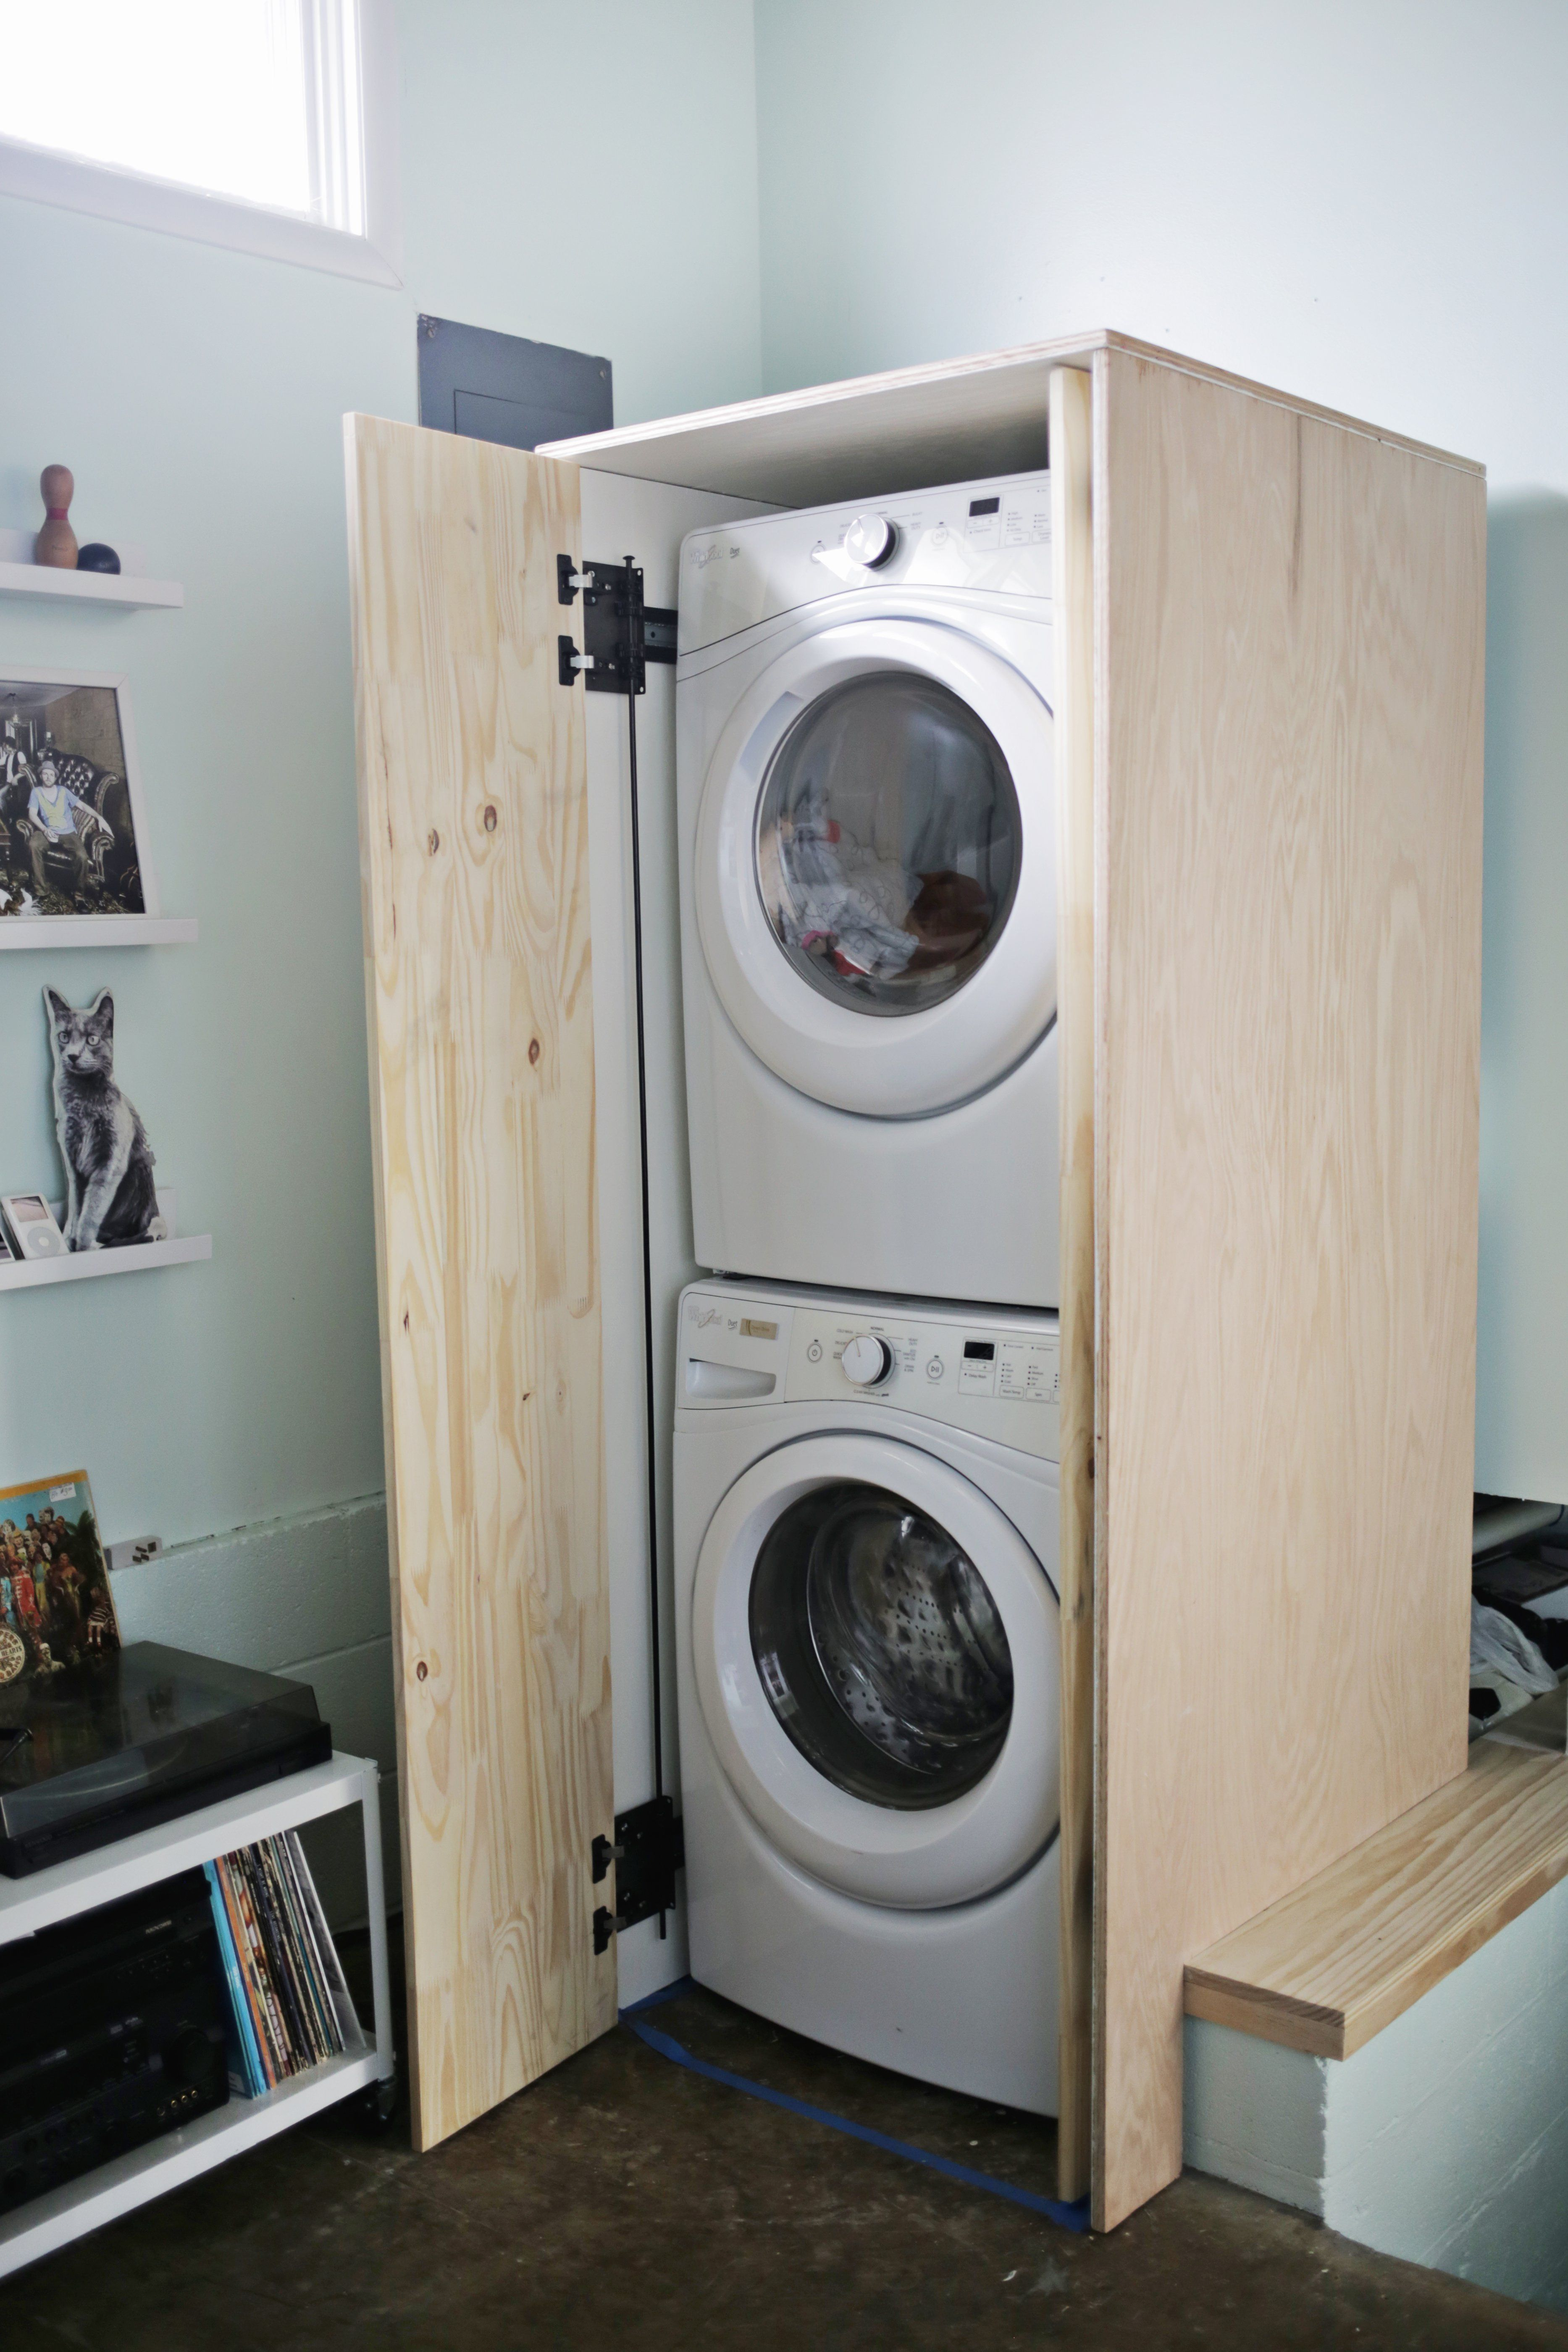 Hidden Washer and Dryer Washer and dryer, Small